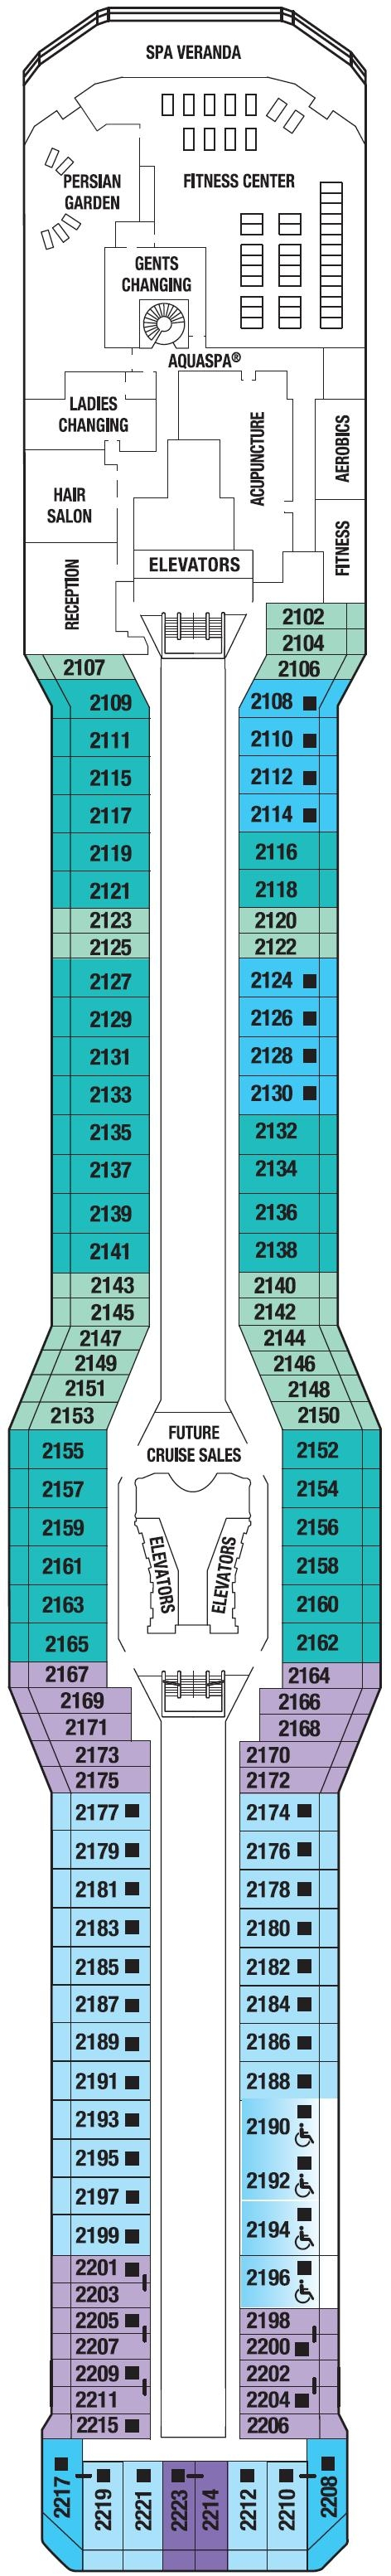 CELEBRITY CRUISES FLEET GUIDE - IMAGE Library